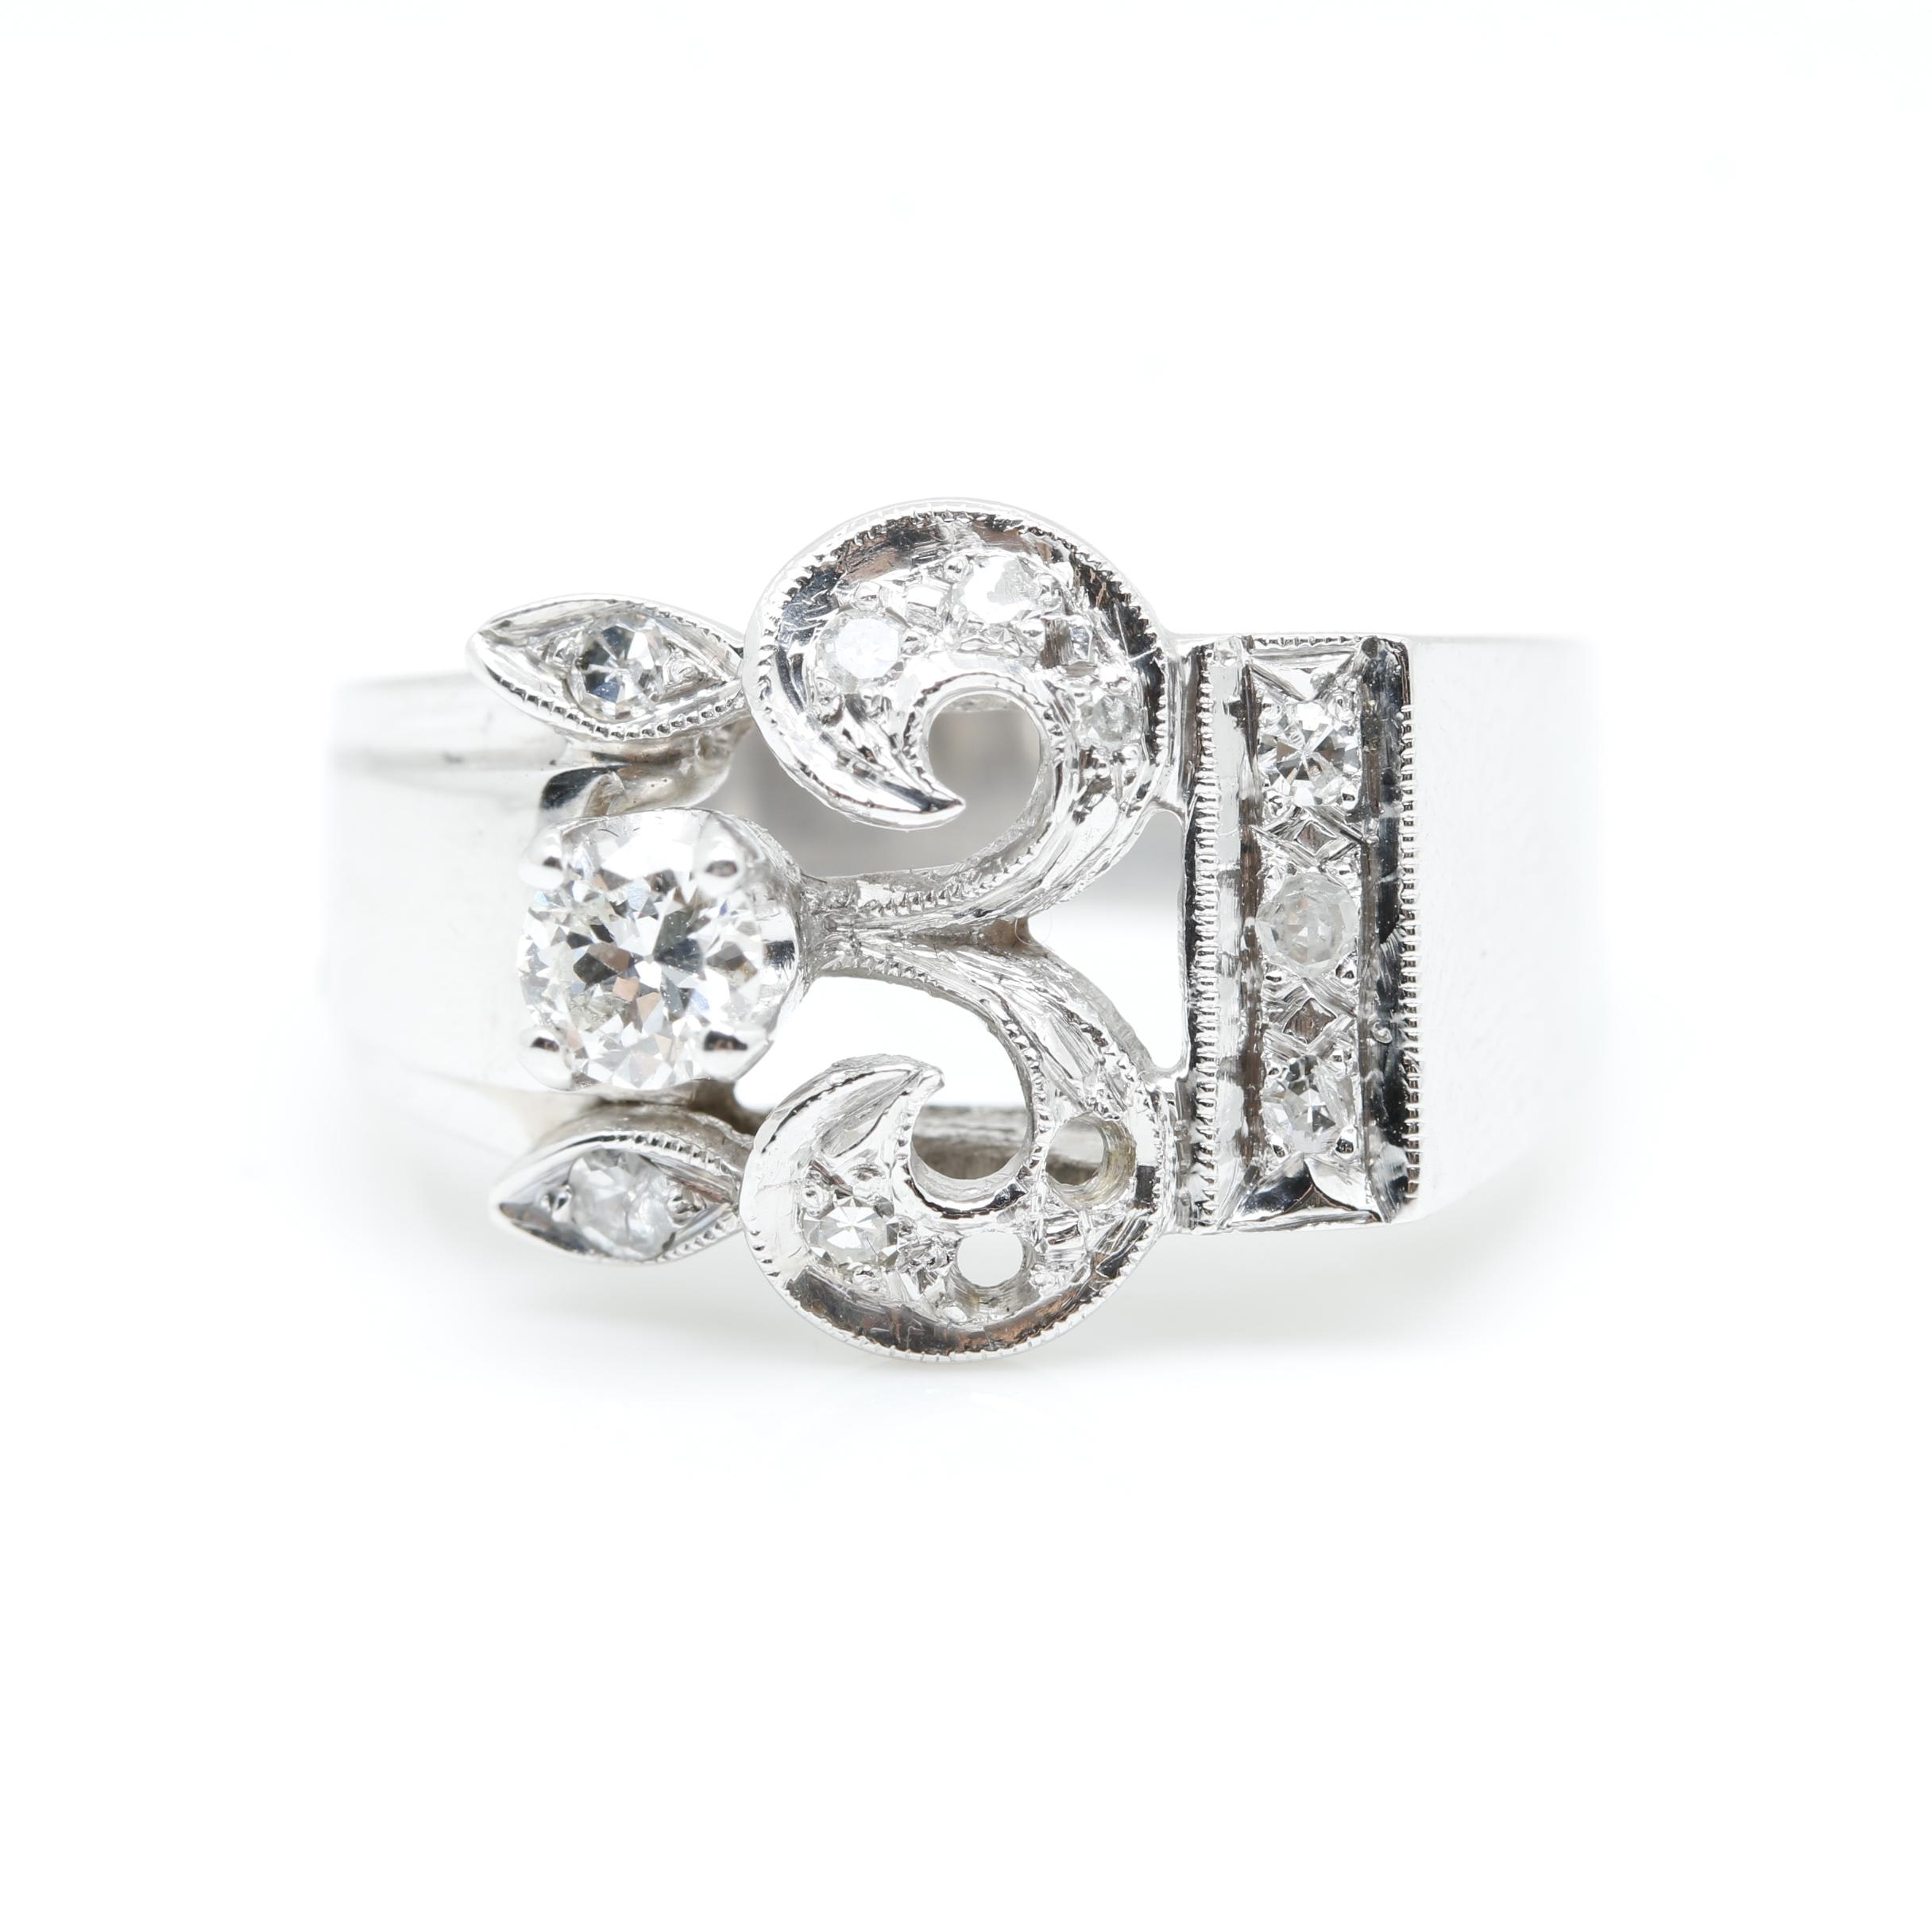 Retro 14K White Gold Diamond Abstract Ring